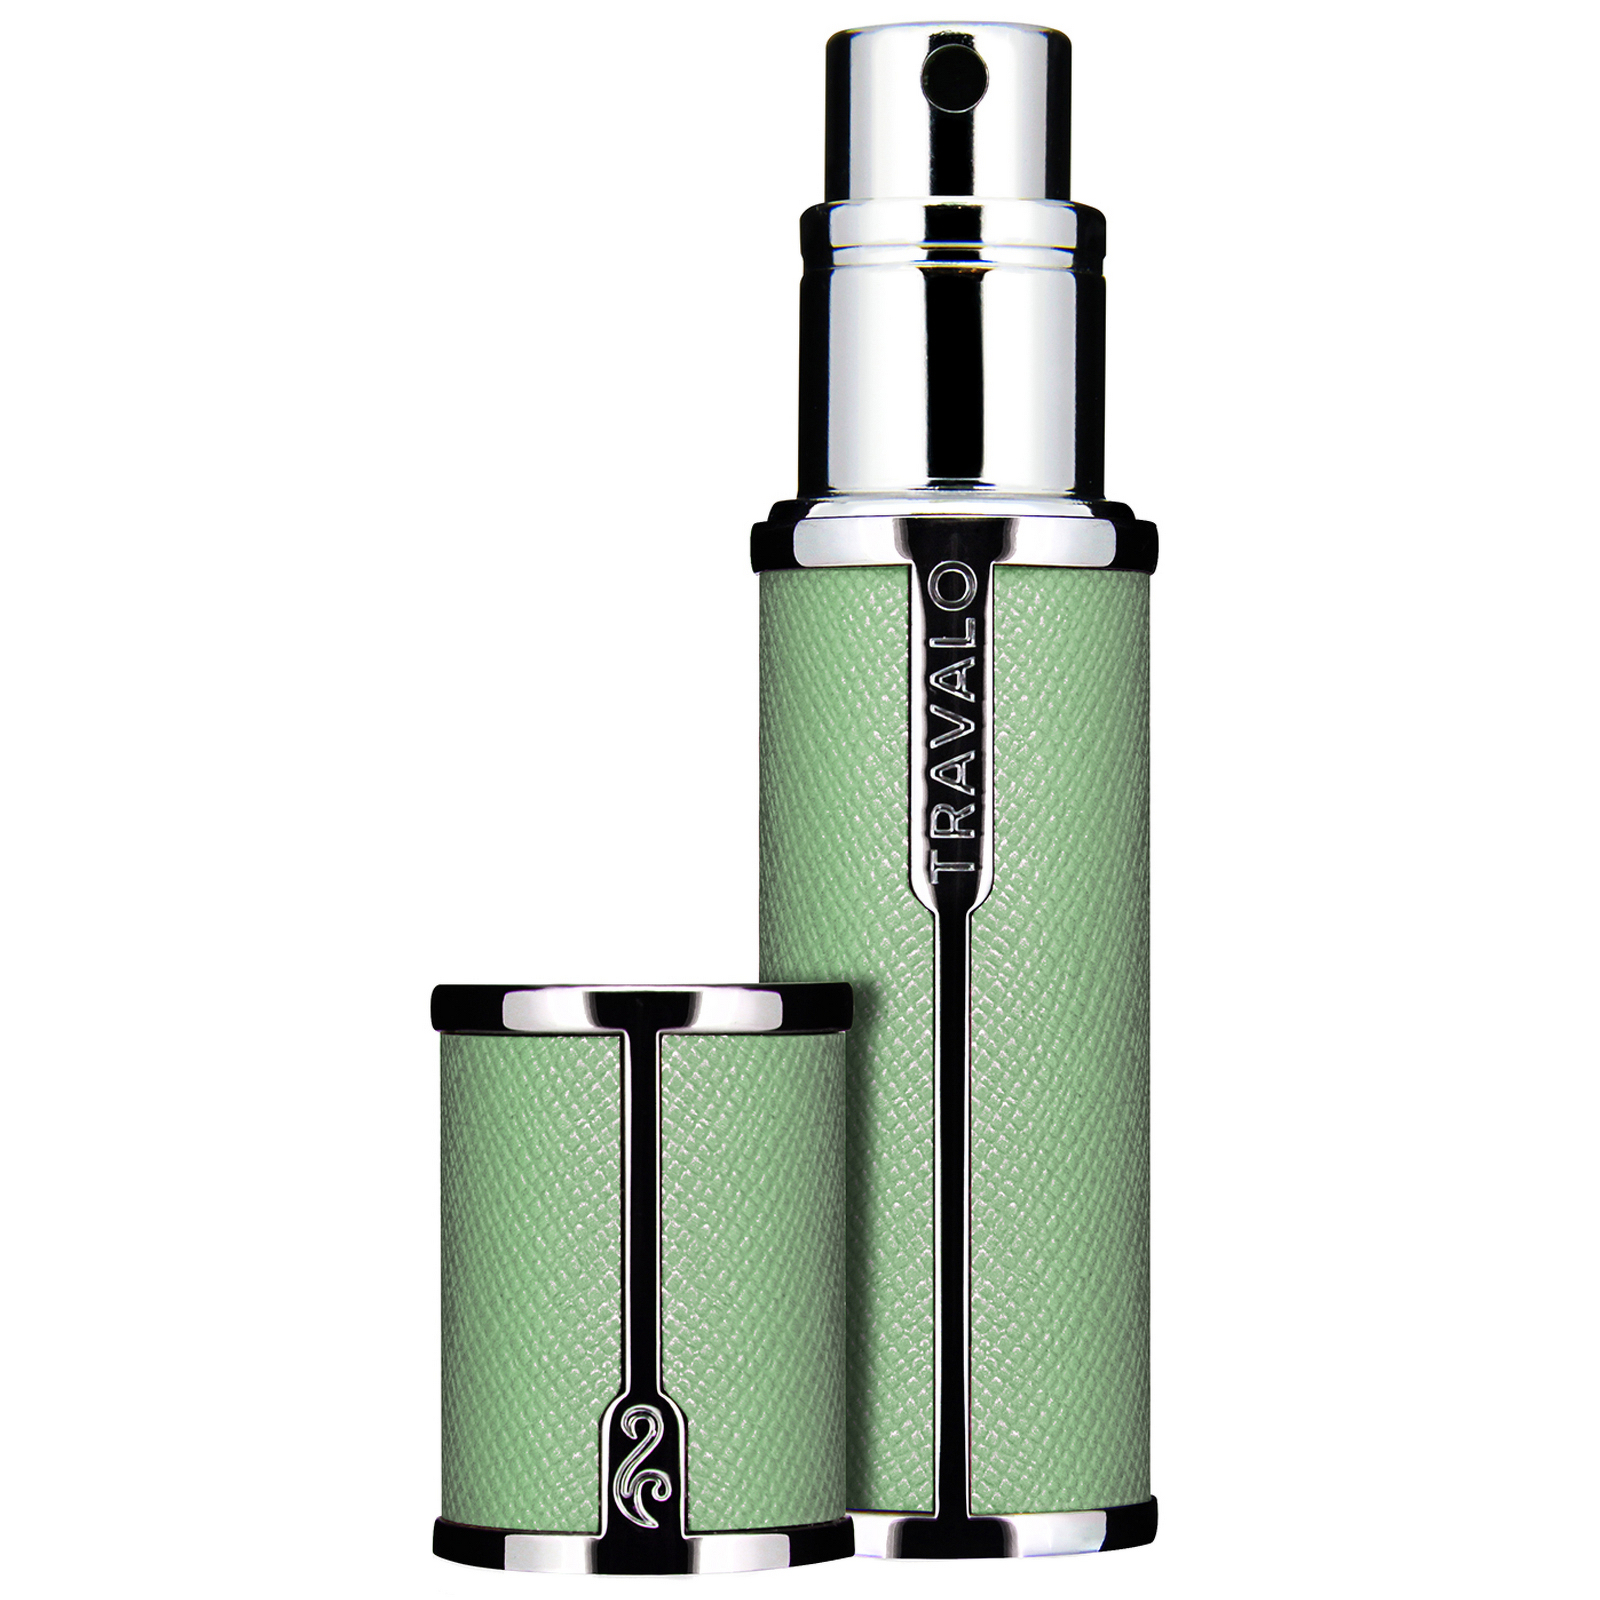 Travalo Perfume Atomiser Milano Aqua 5ml / 0.17 fl.oz.